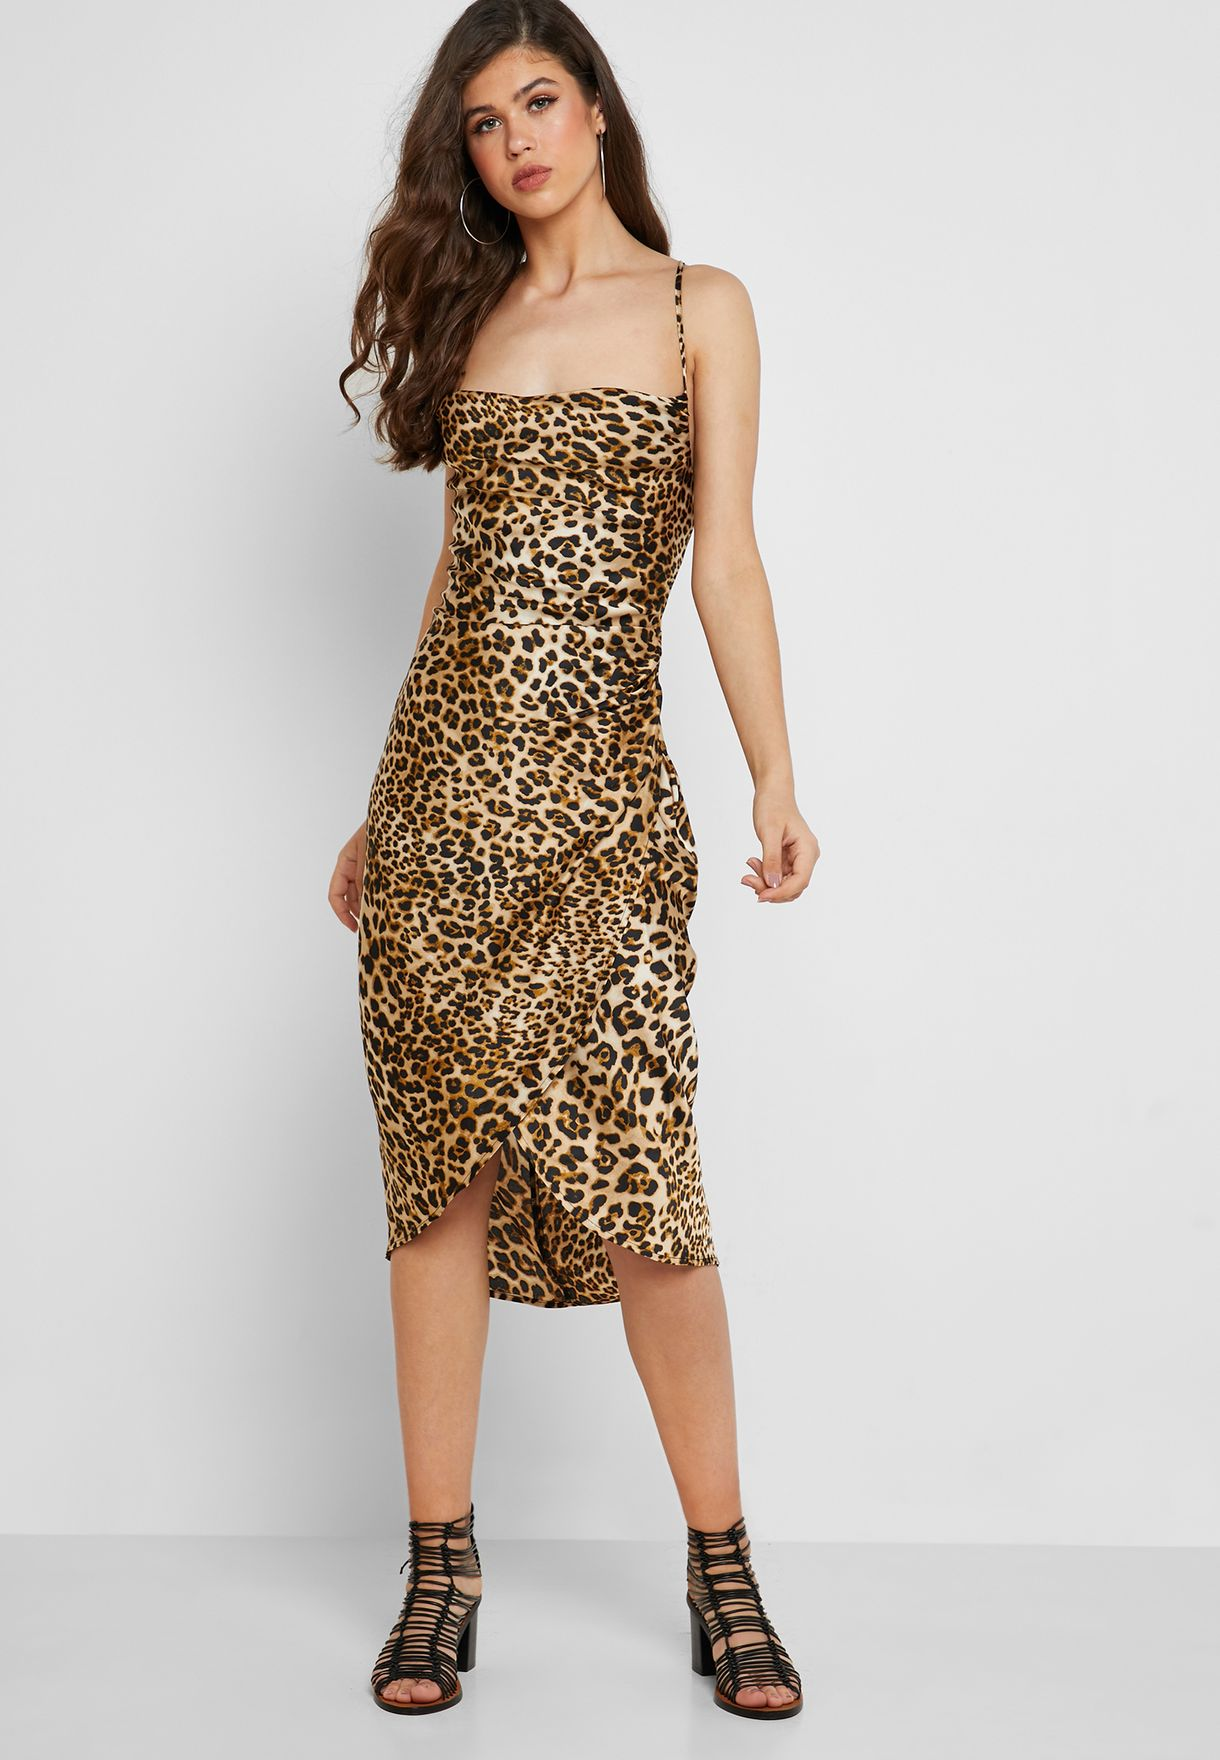 ab603ee4ab24 Shop Moon River prints Leopard Print Cami Dress MR4977 for Women in ...